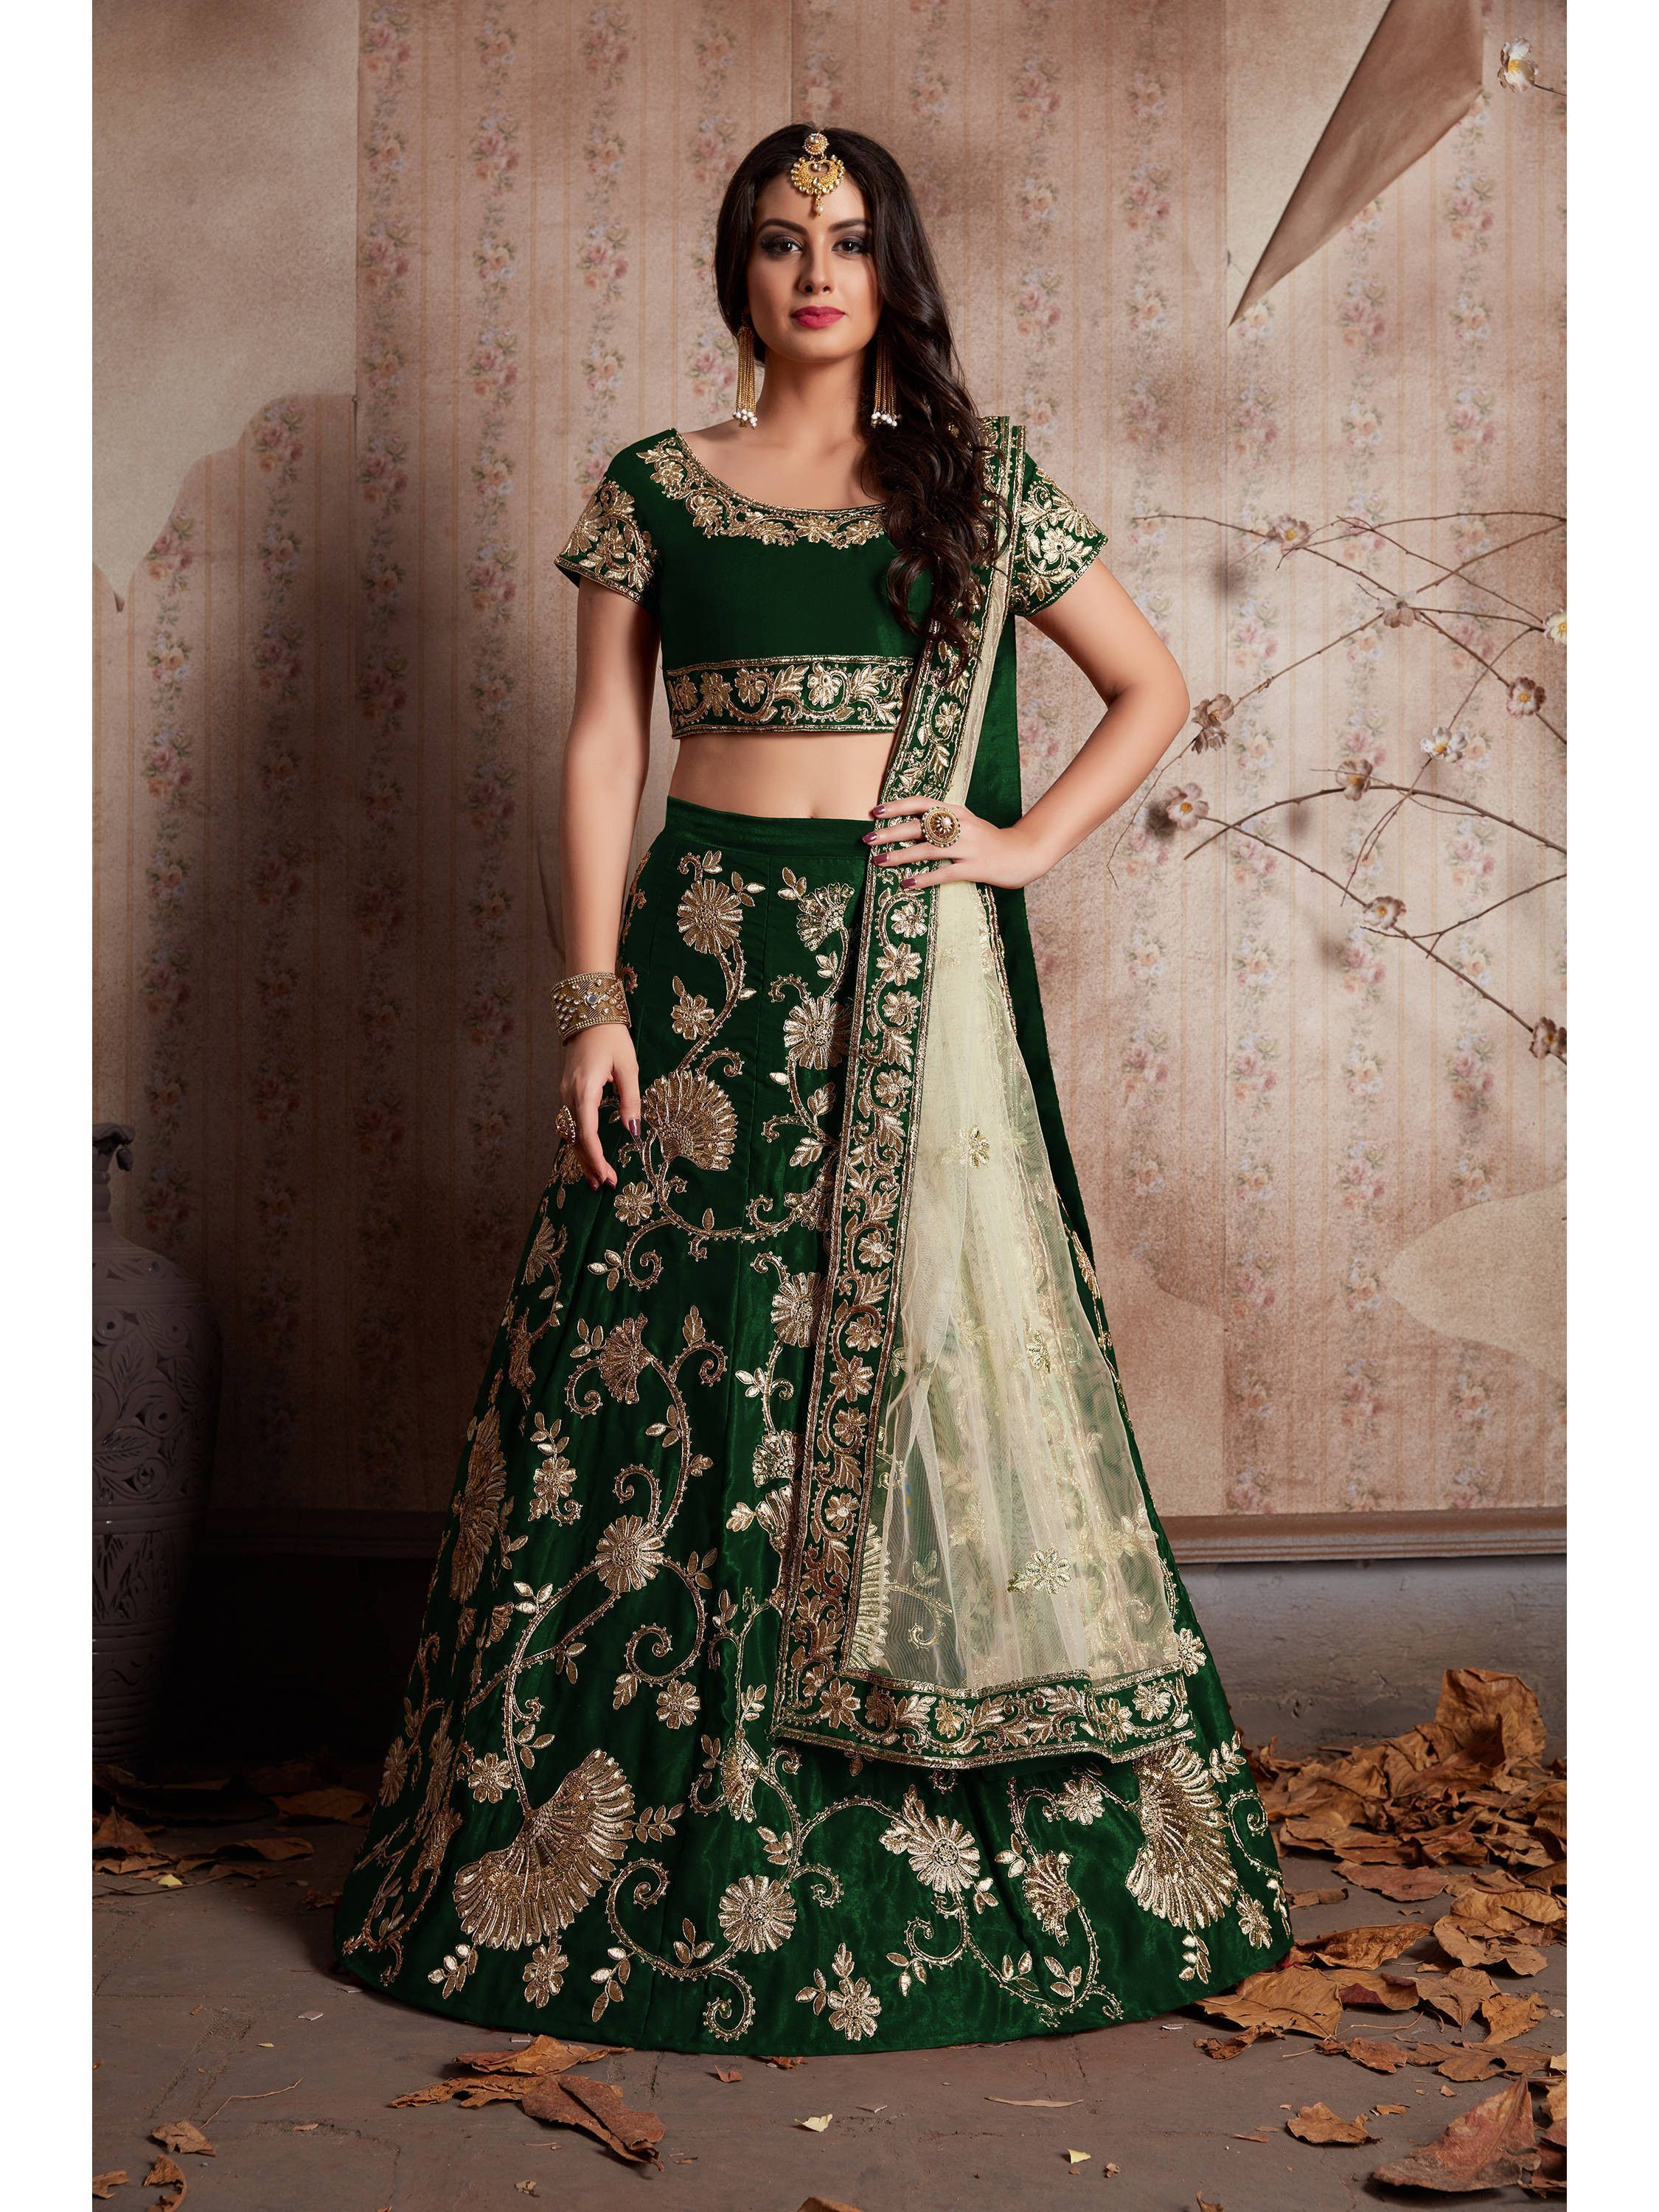 Buy Bottle Green Embroidered Velvet Bridal Lehenga Choli With Dupatta Online From Ethnicplus For 4 849 00